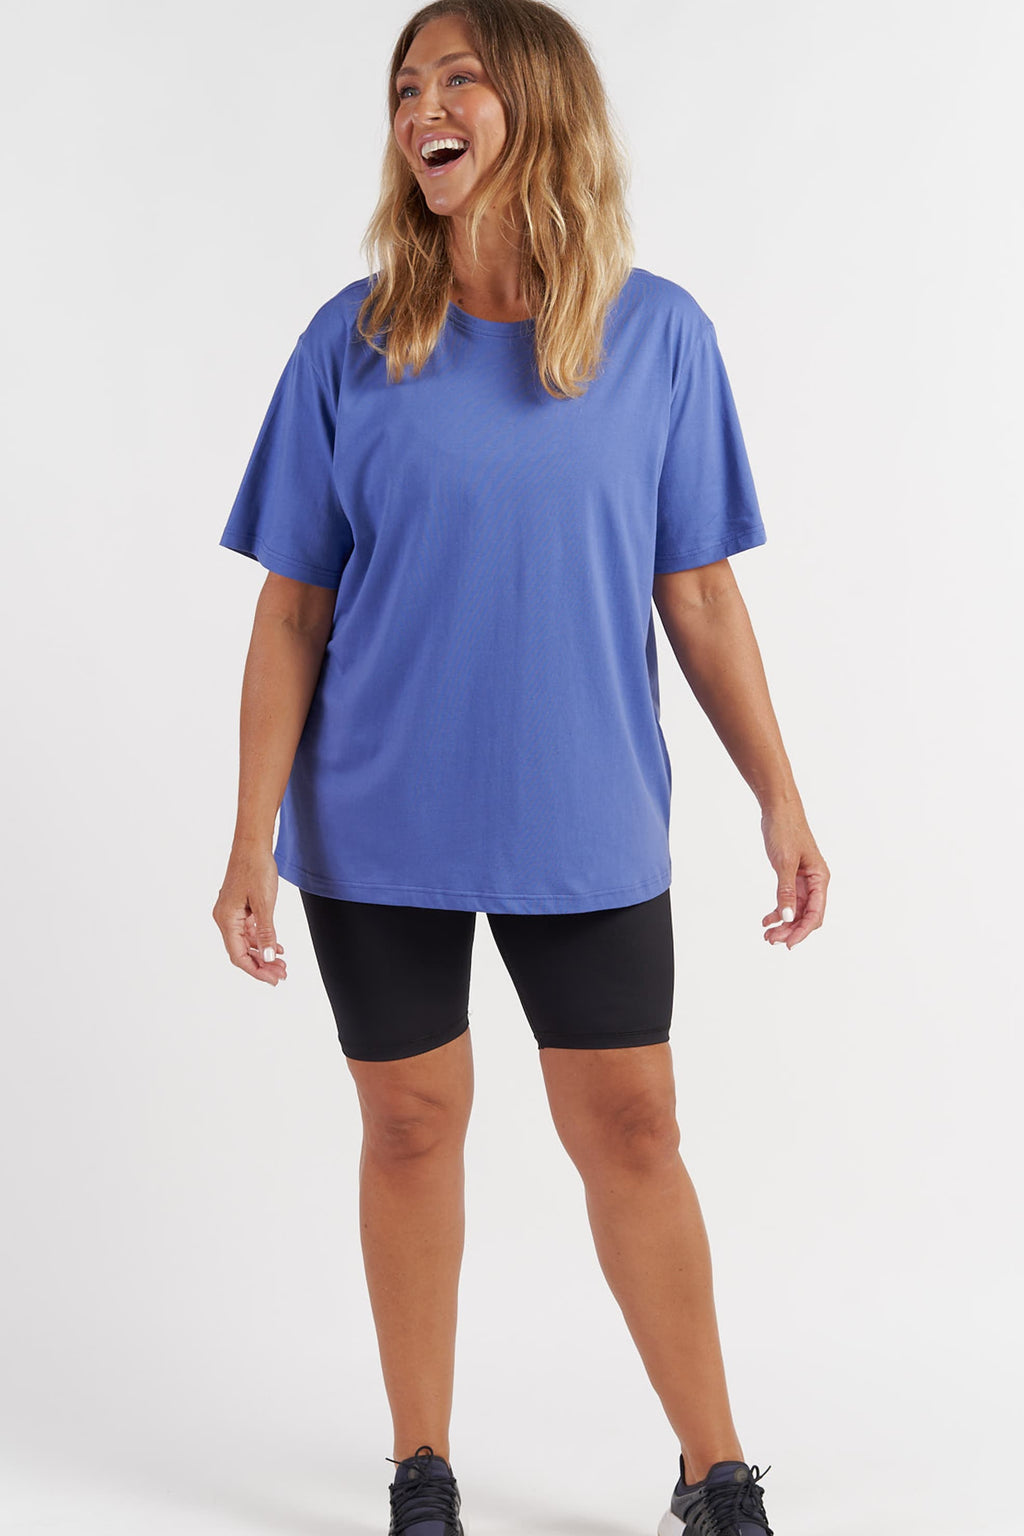 activewear-oversized-tee-bright-blue-large-front